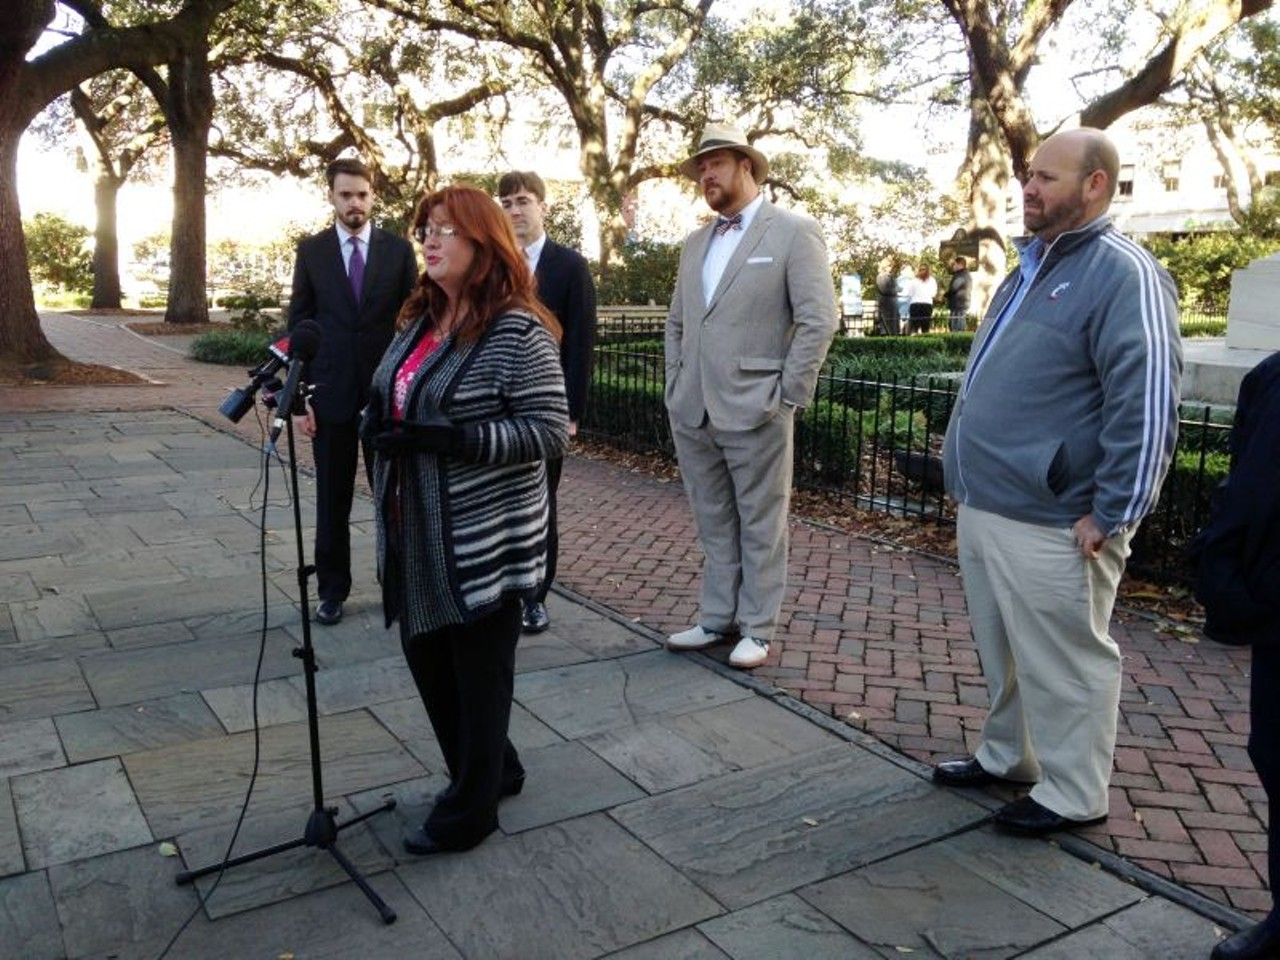 Walking Tours Of Savannah History Without A License City Notebook Savannah News Events